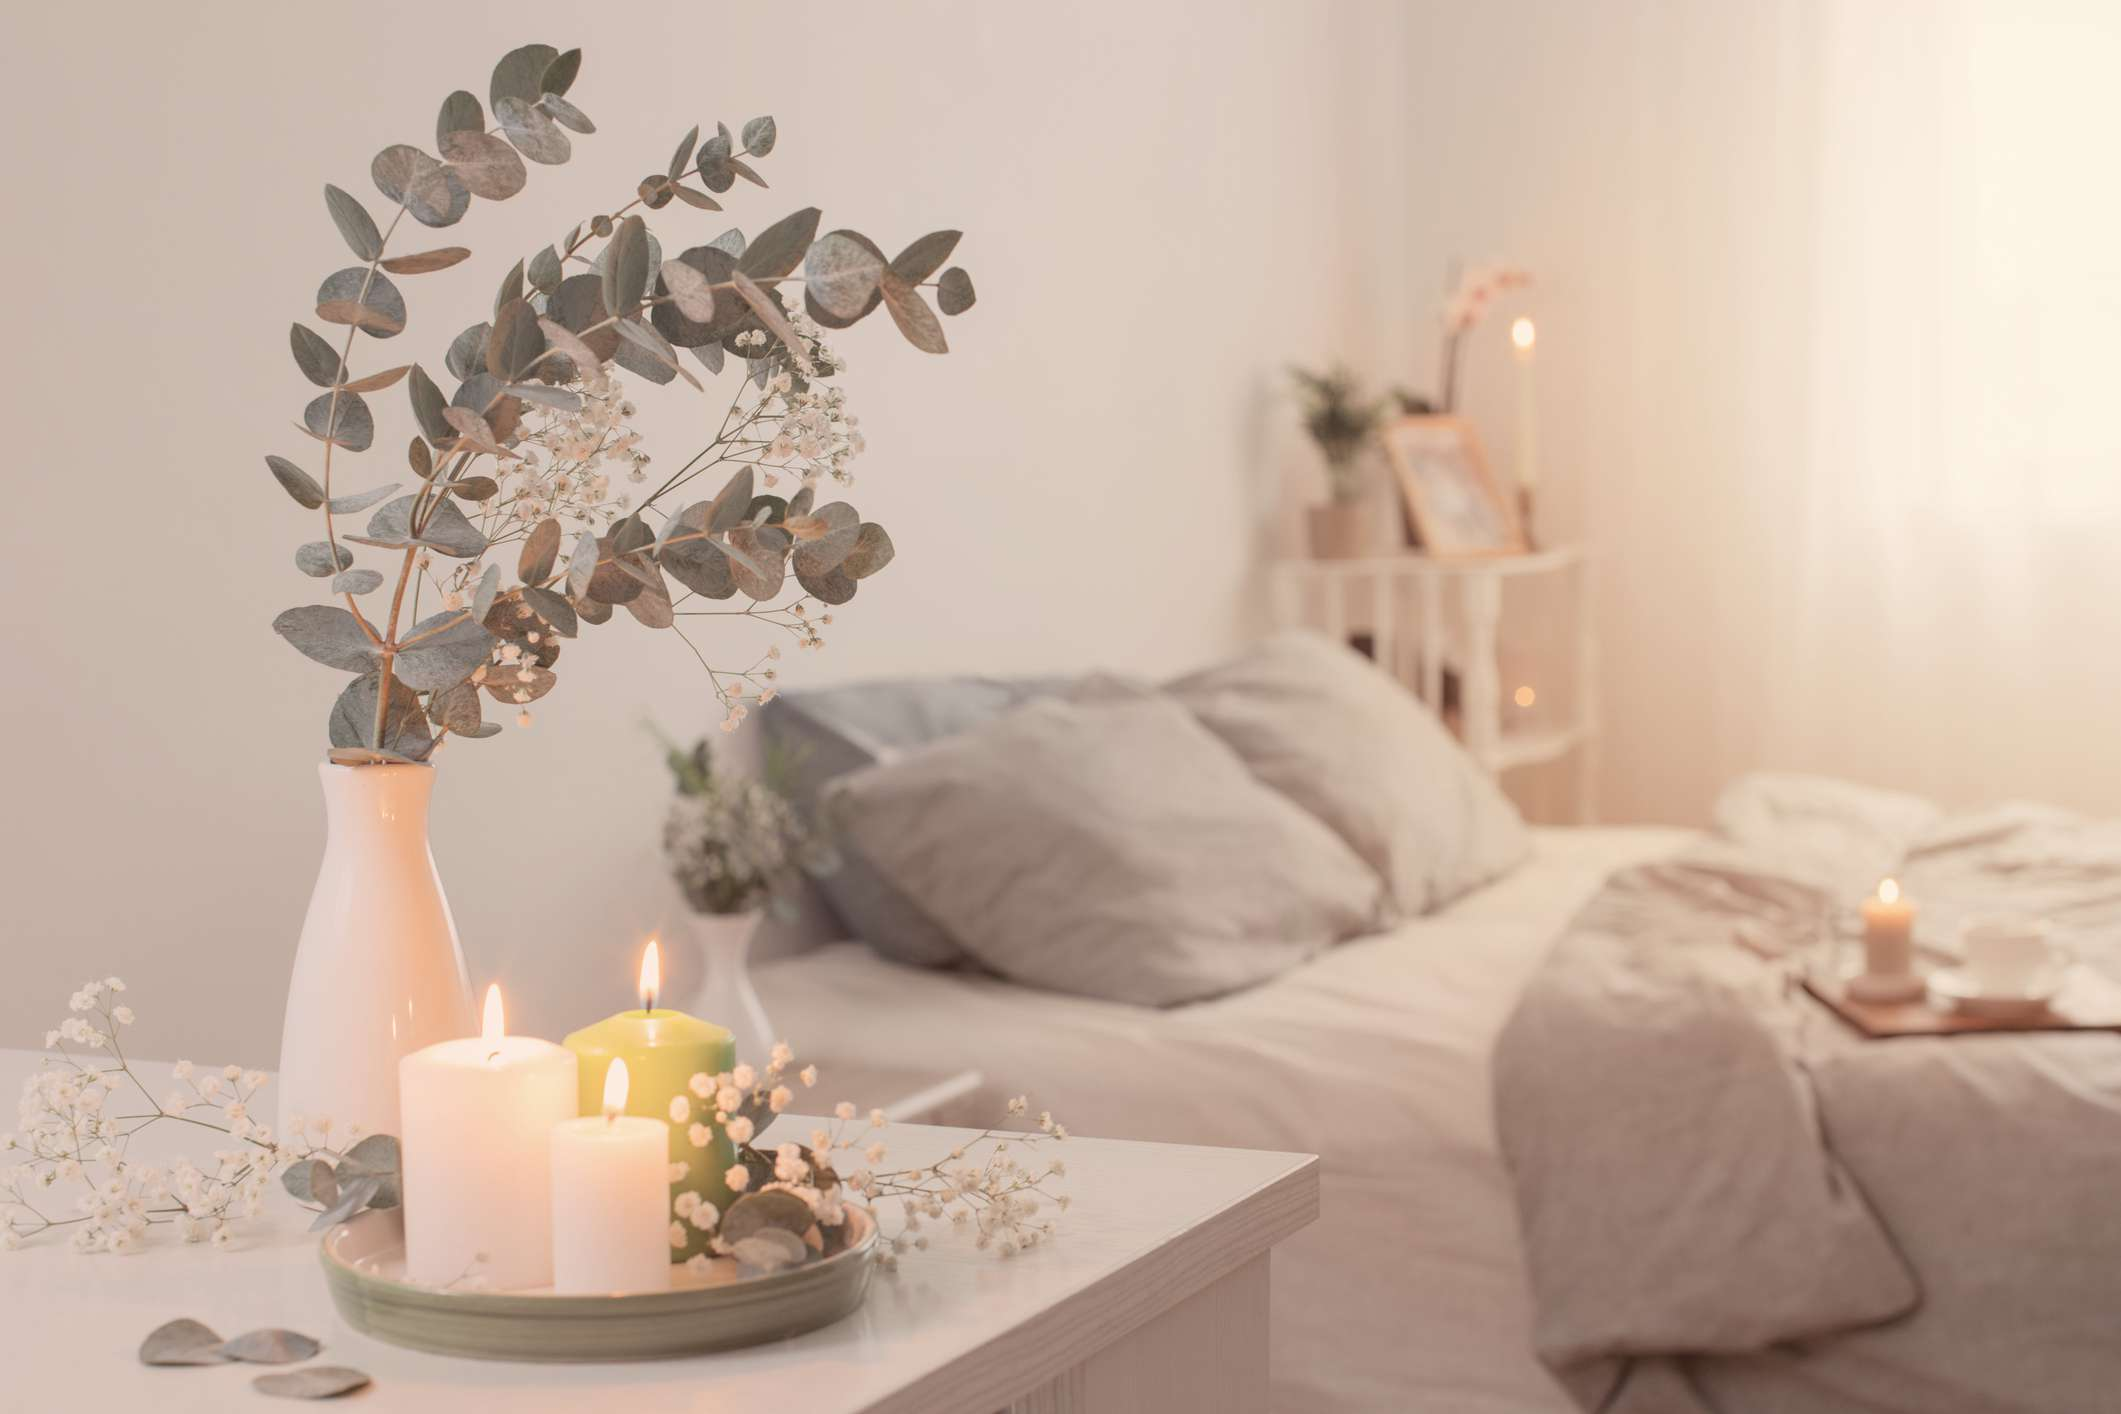 cozy bedroom with candles on bedside table